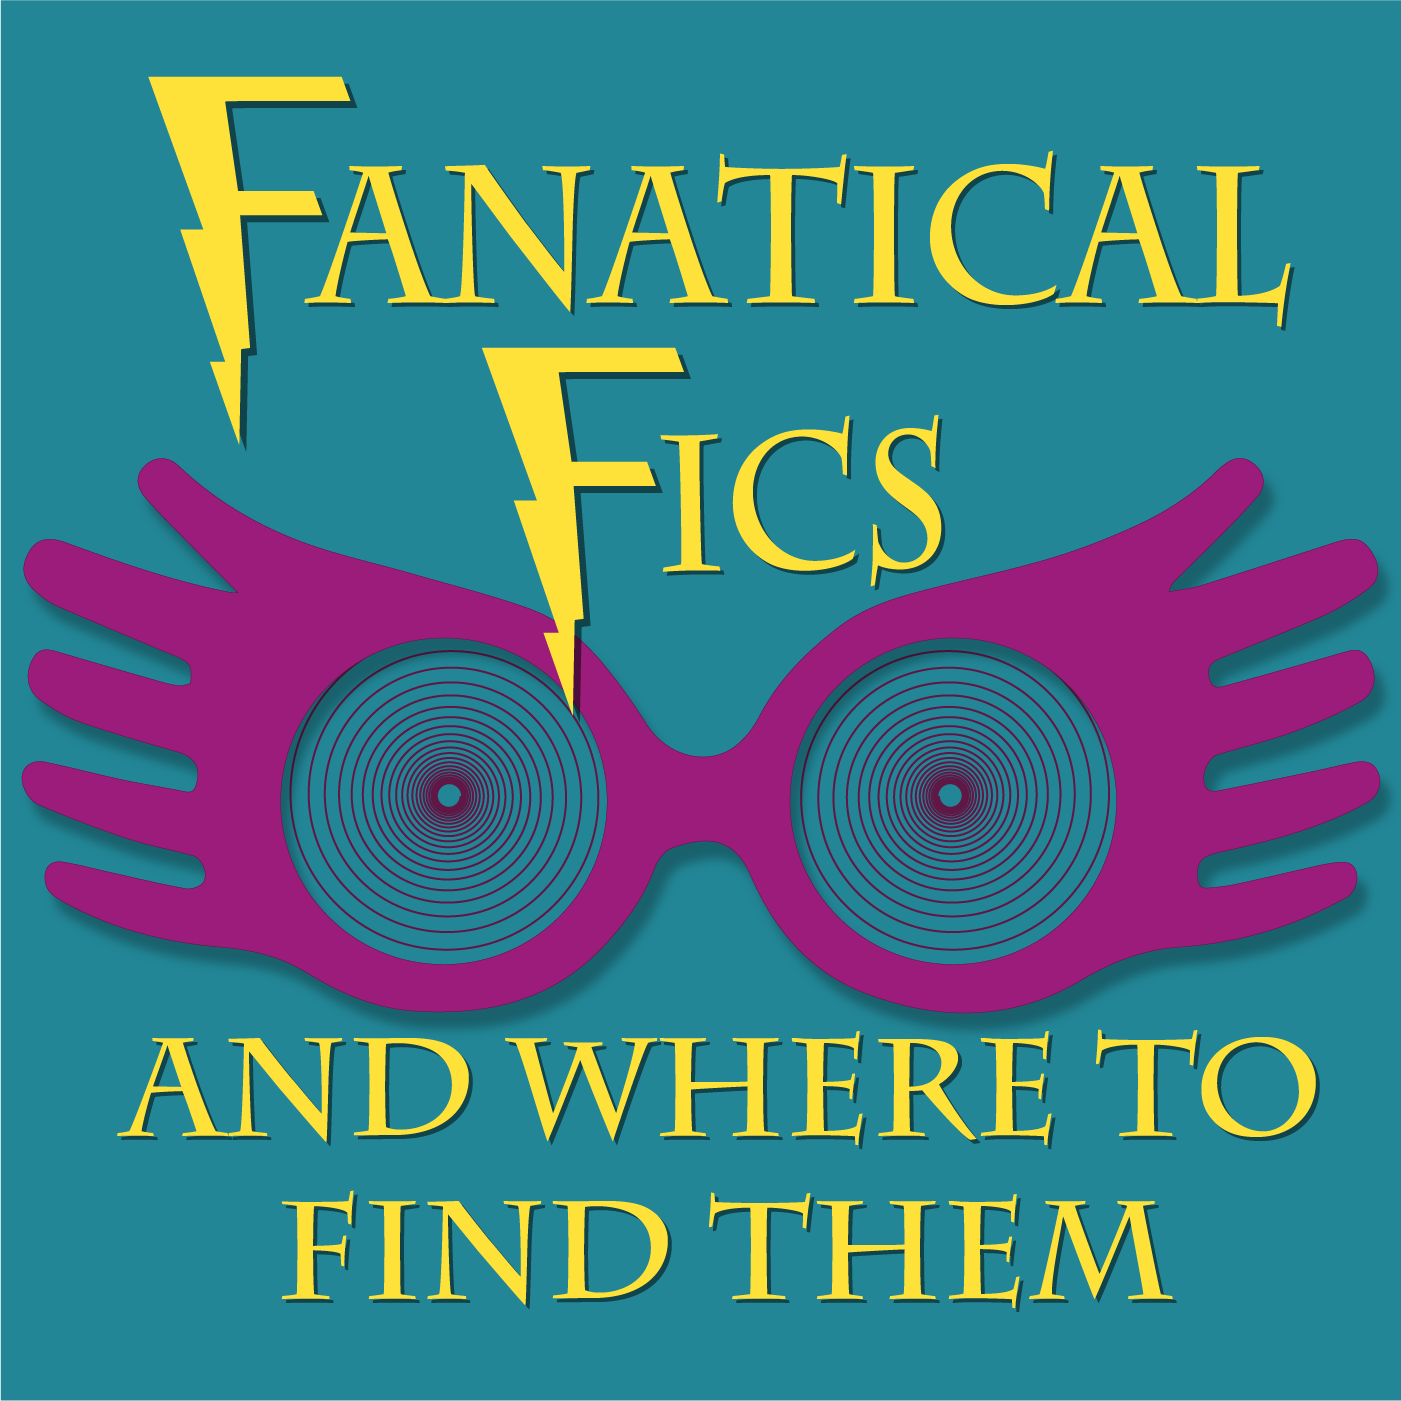 Recommendations - Fanatical Fics and Where to Find Them